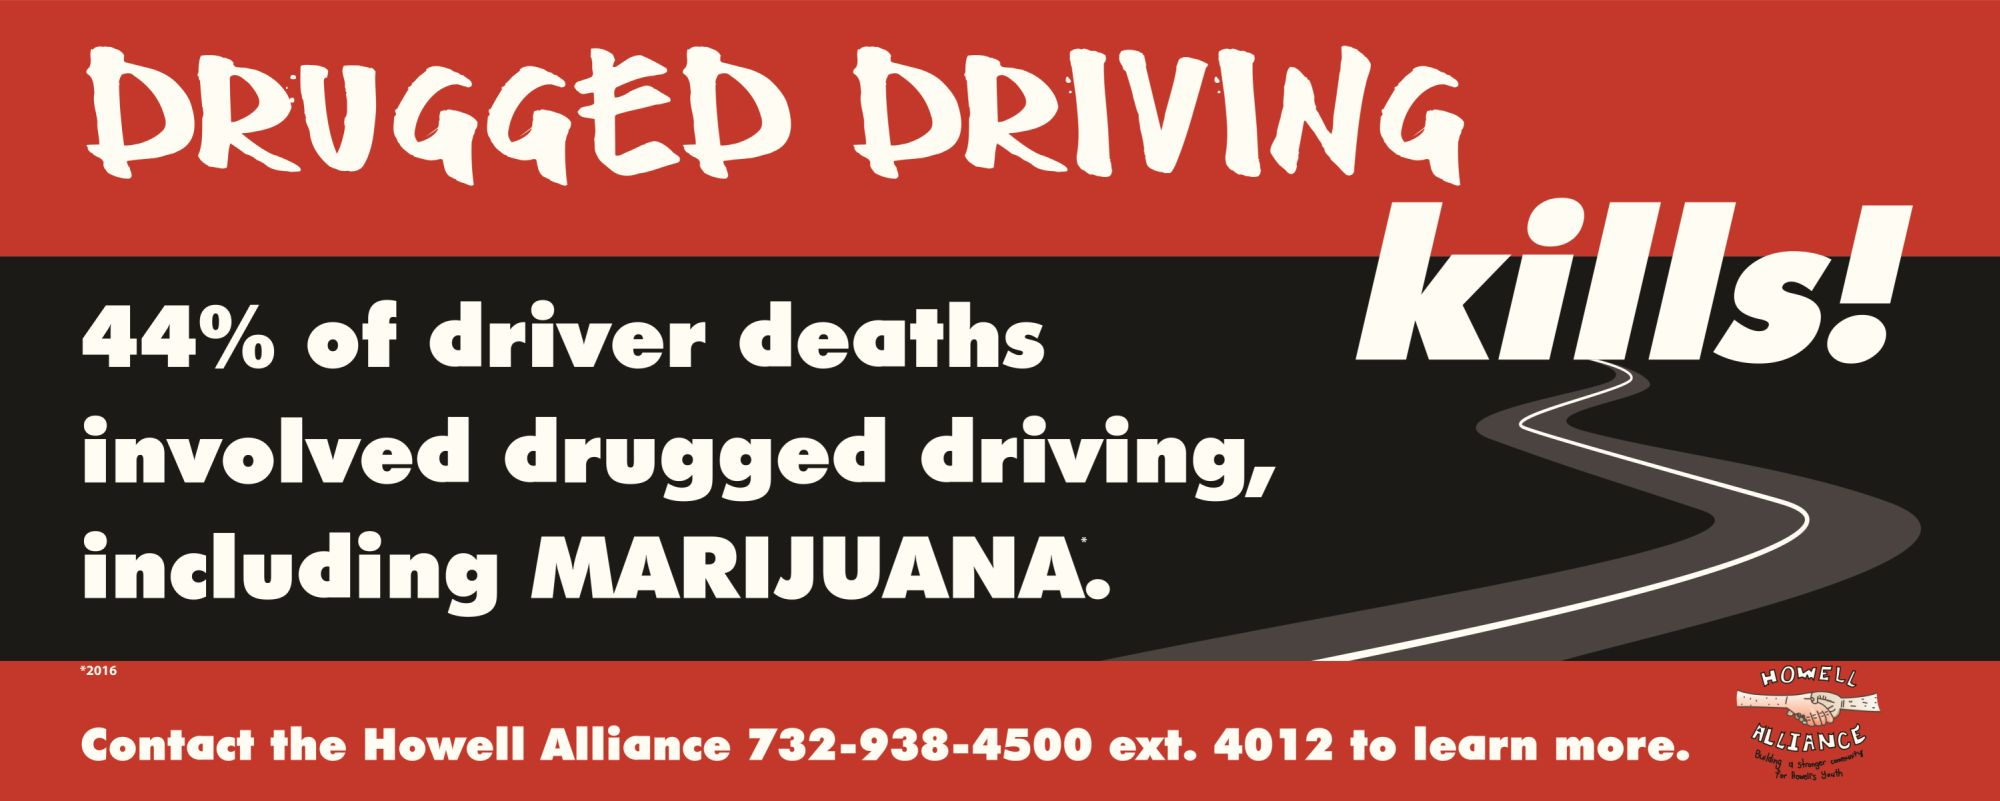 Banner Q1 2019 Drugged Driving